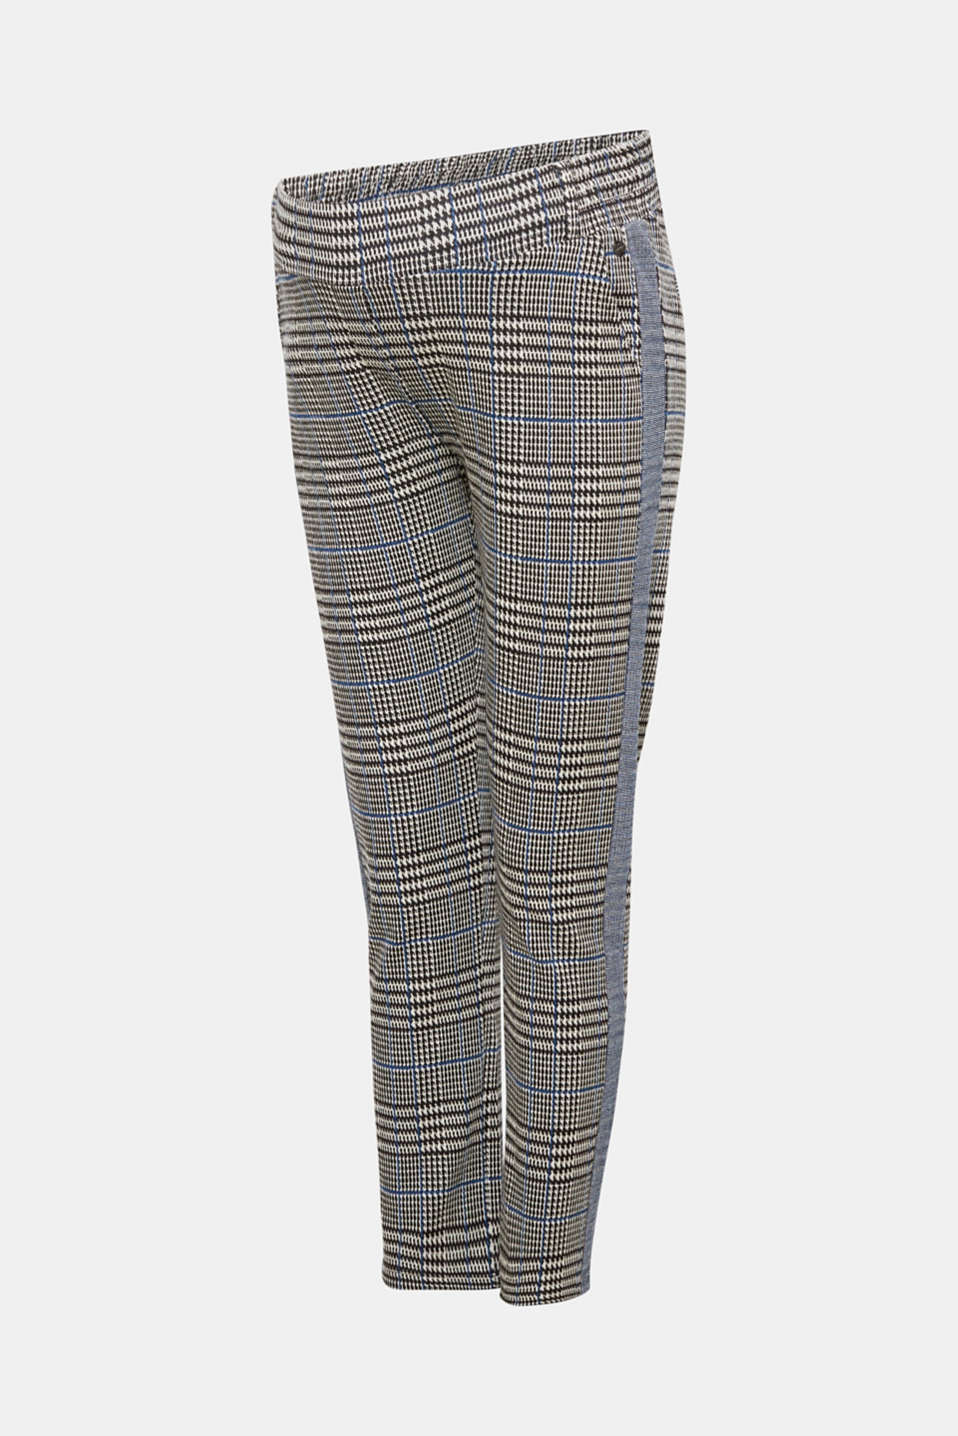 Cropped stretch jersey trousers with a wide waistband, LCBLACK, detail image number 7